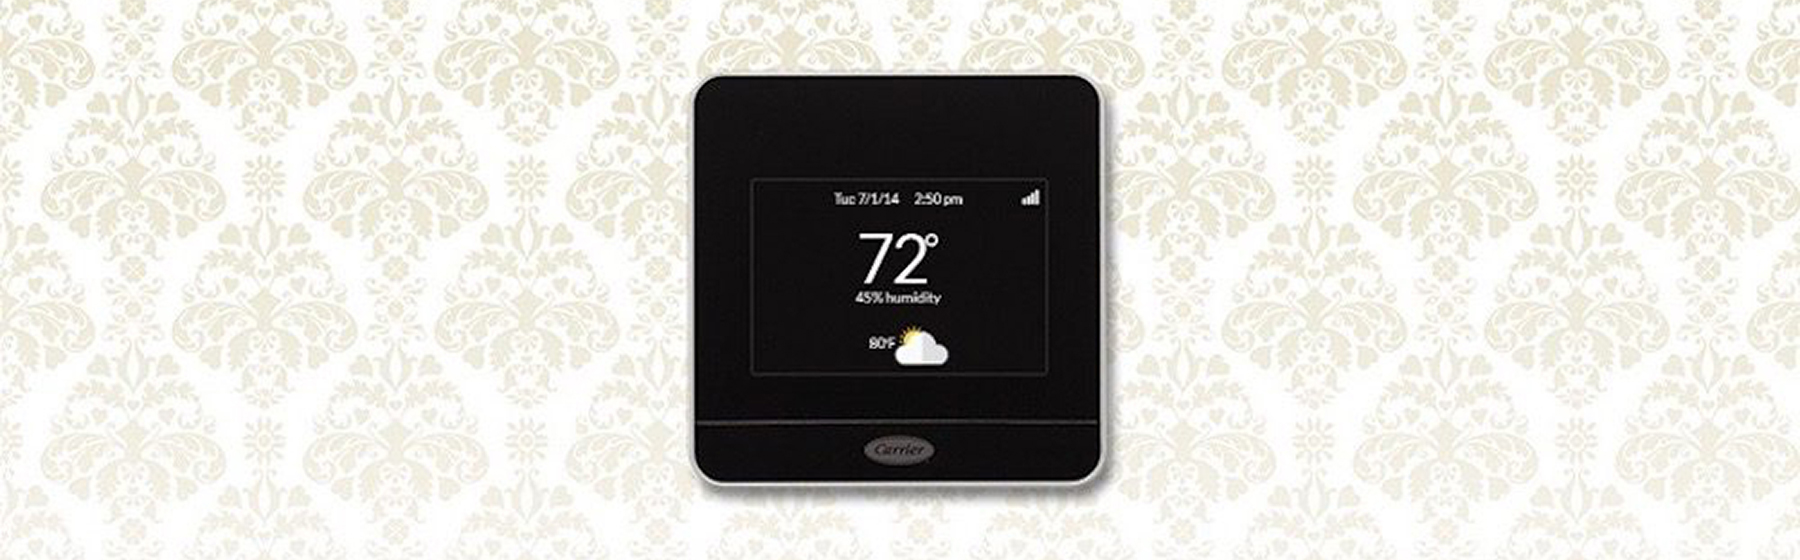 Carrier® Brings Apple® HomeKit™ Support to Côr™ Thermostat